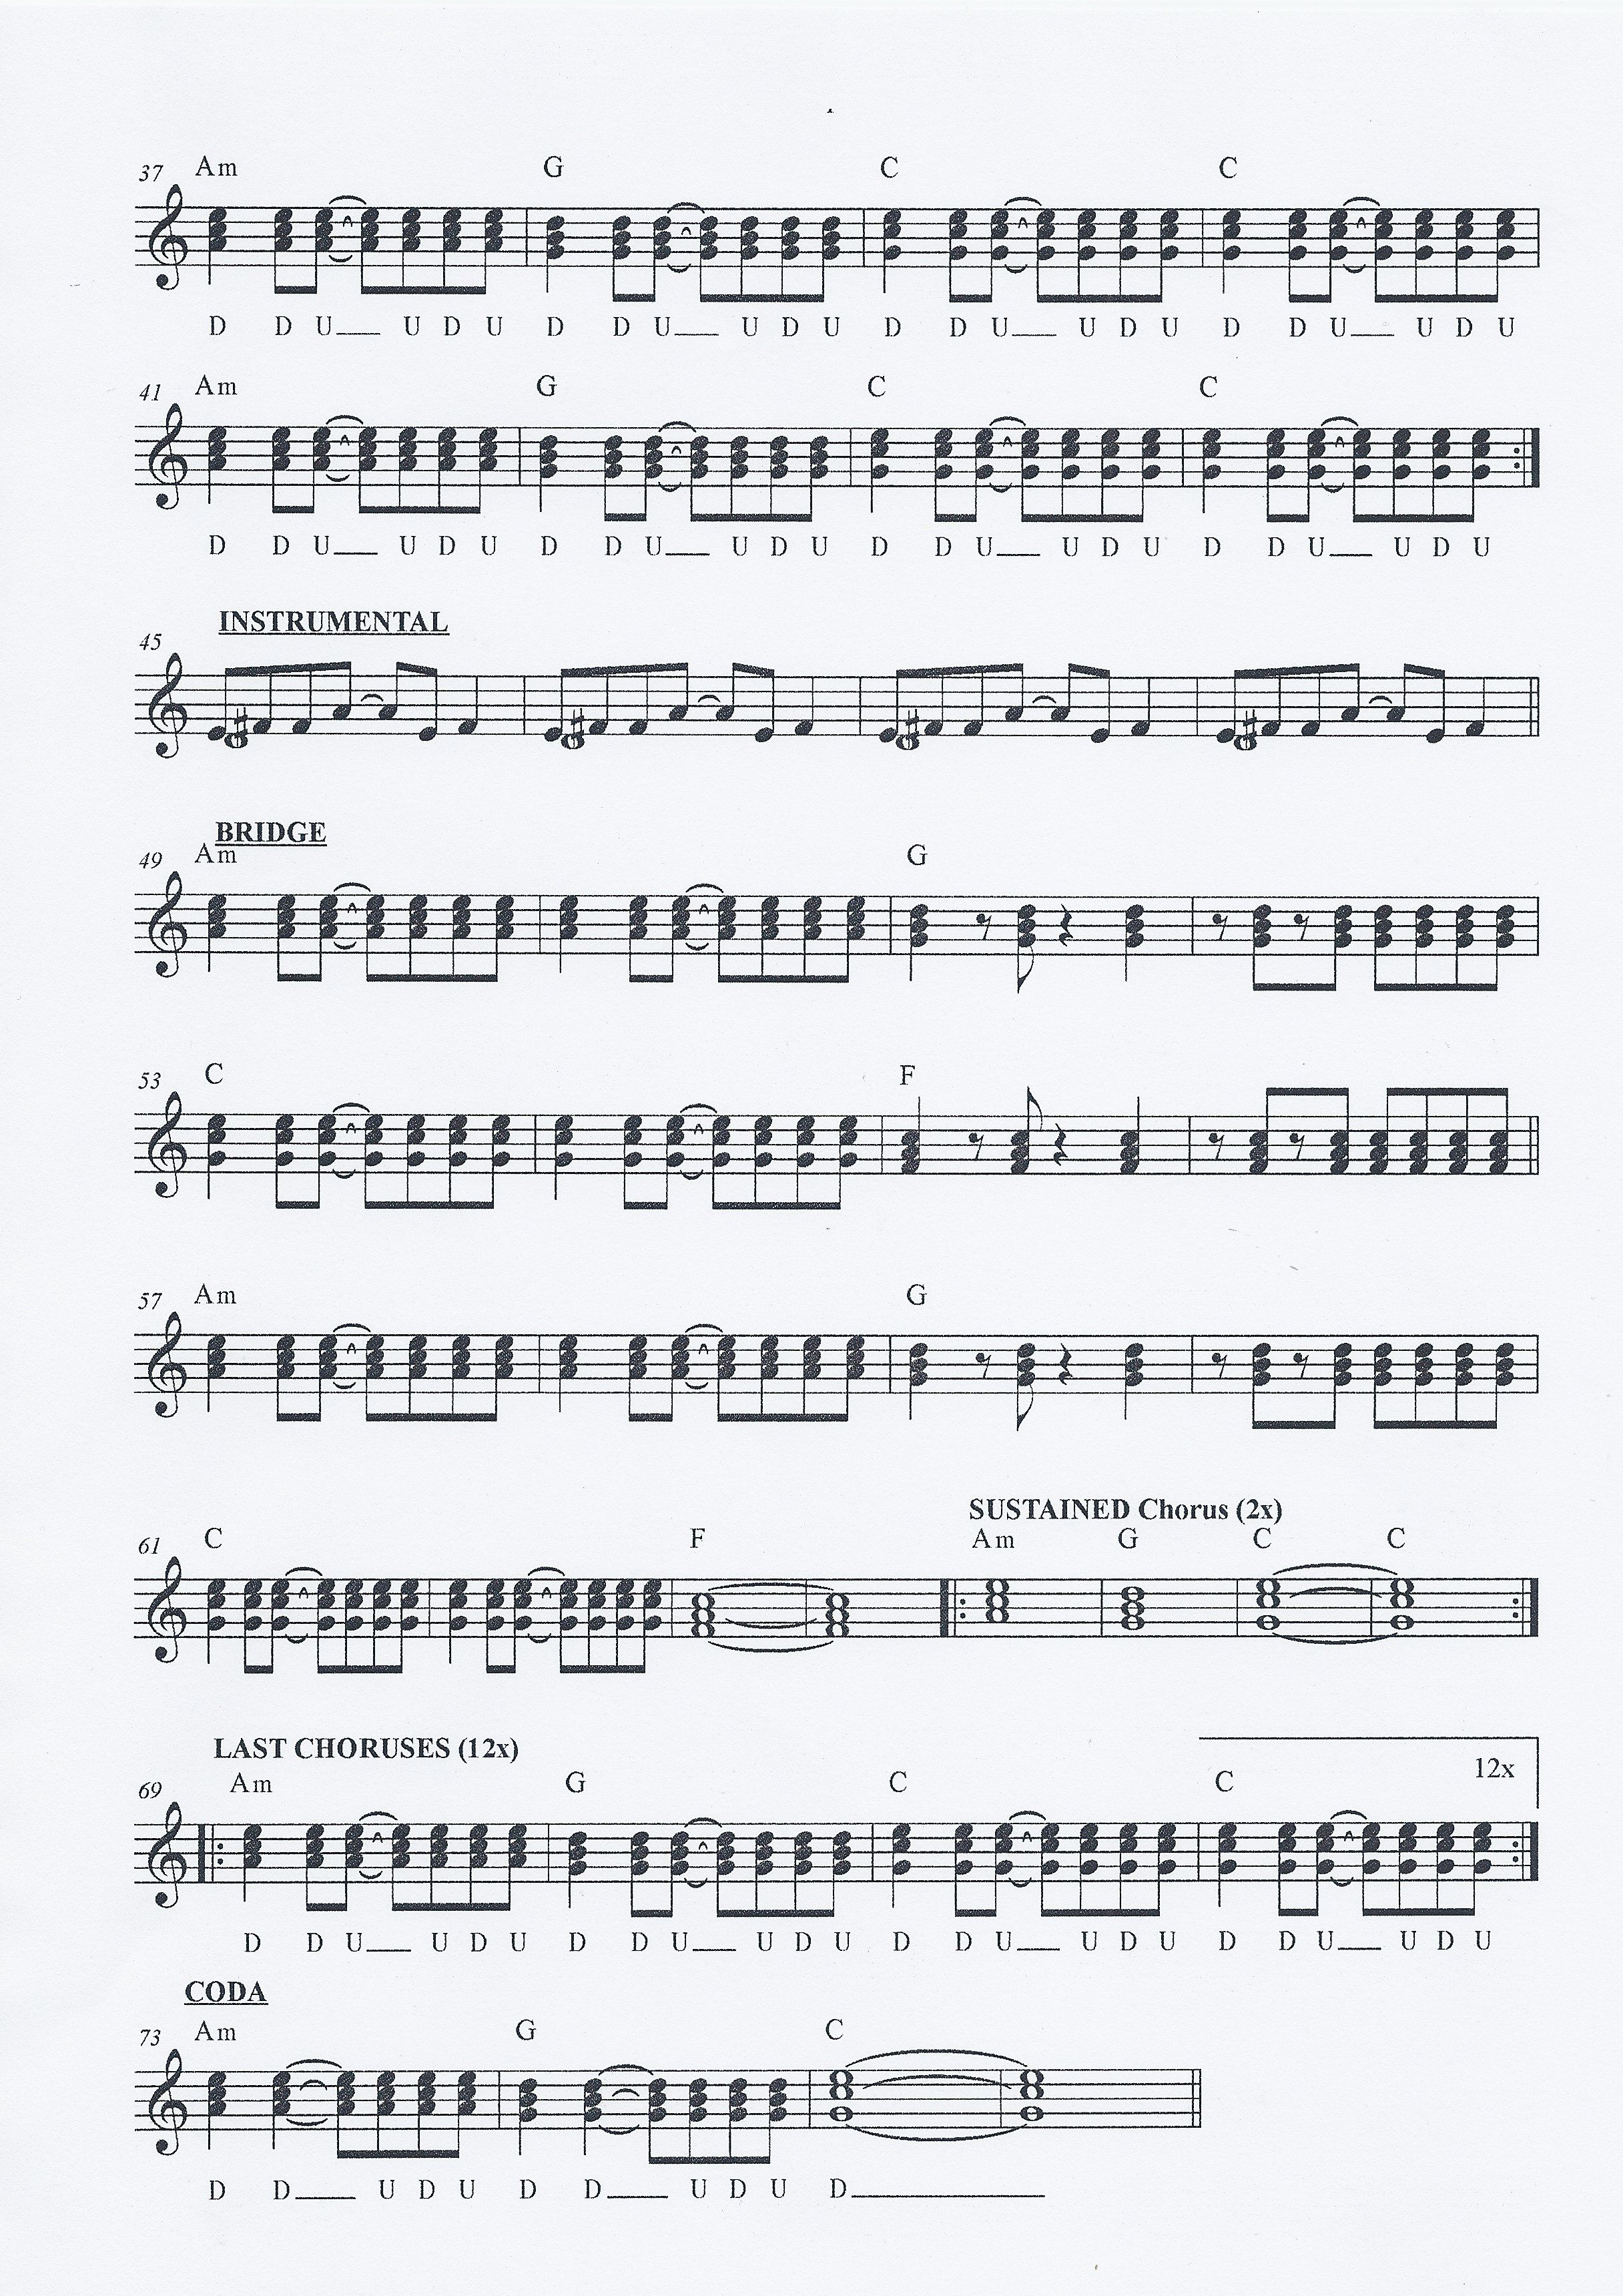 Riptide Piano Sheet Music With Letters Creativeletter